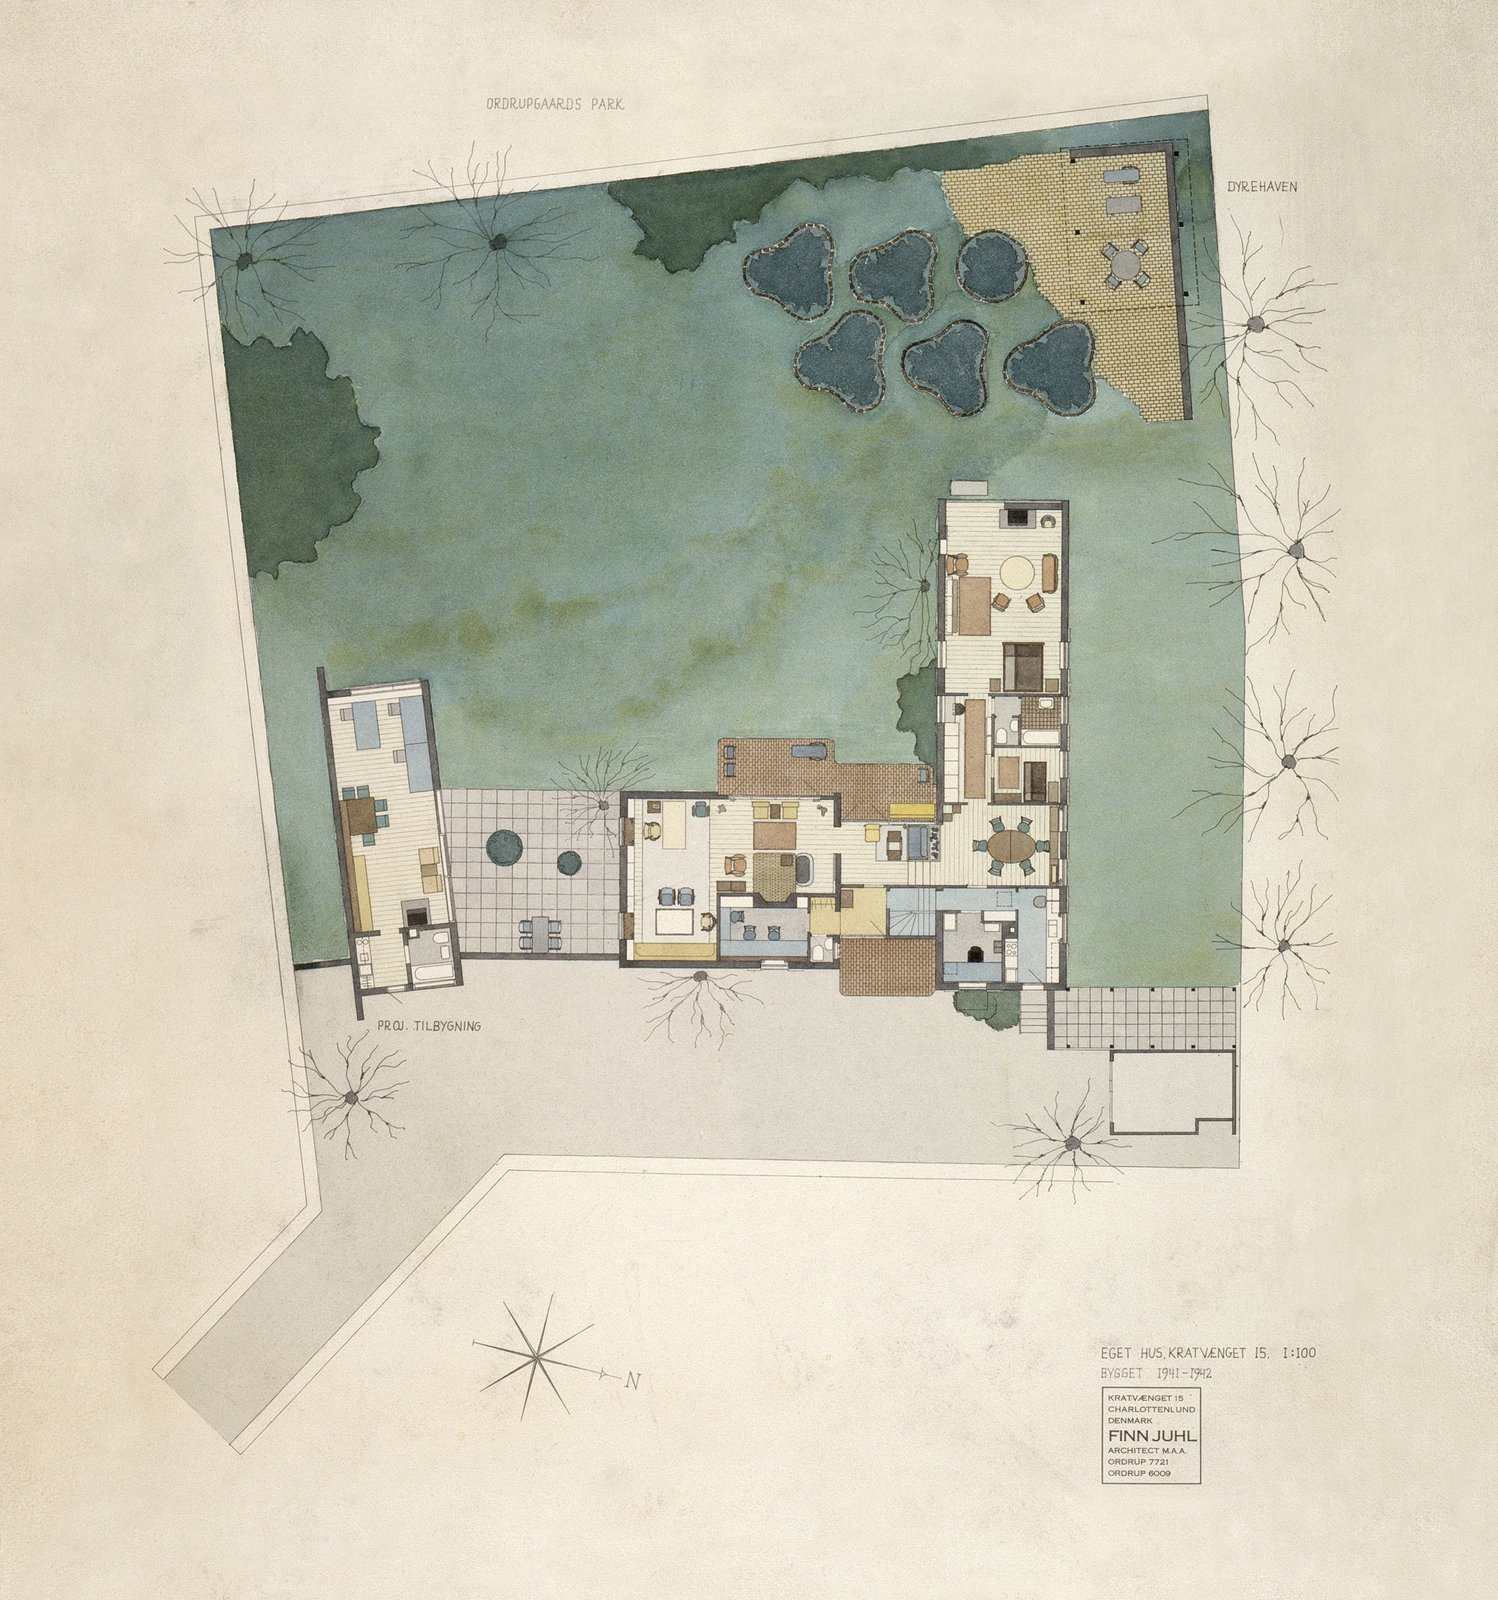 Juhl painted this watercolor rendering of the house in 1968, more than 25 years after the house was finished. The site plan of the property shows a separate building that was supposed to house Juhl's design studio. The plan was never realized and the bedroom facing west was expanded instead.